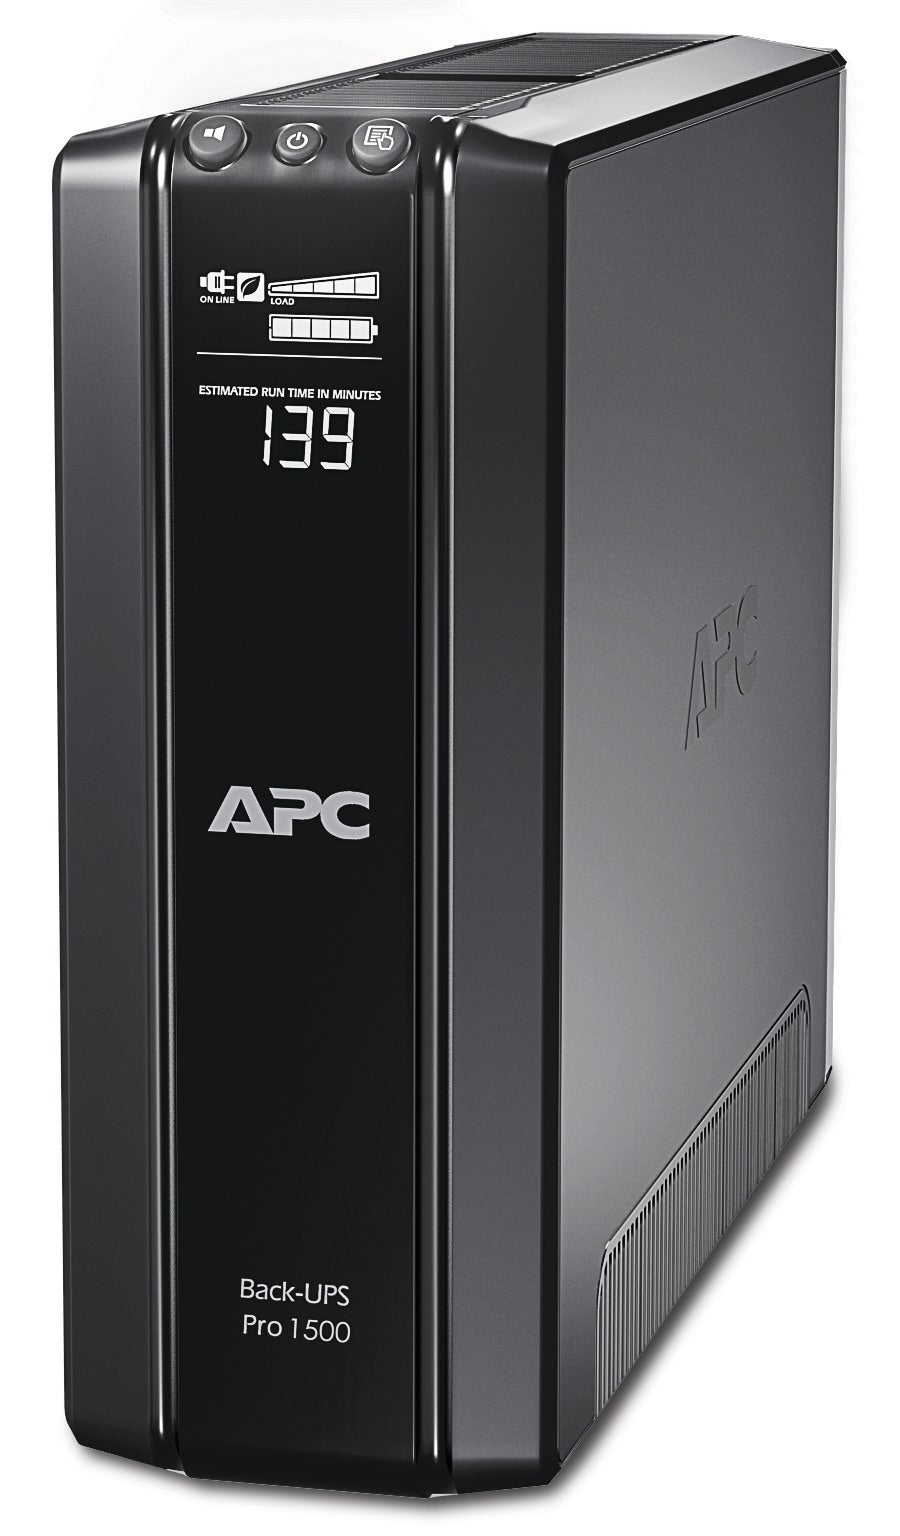 BR1500GI APC Power-Saving Back-UPS Pro 1500, 230V